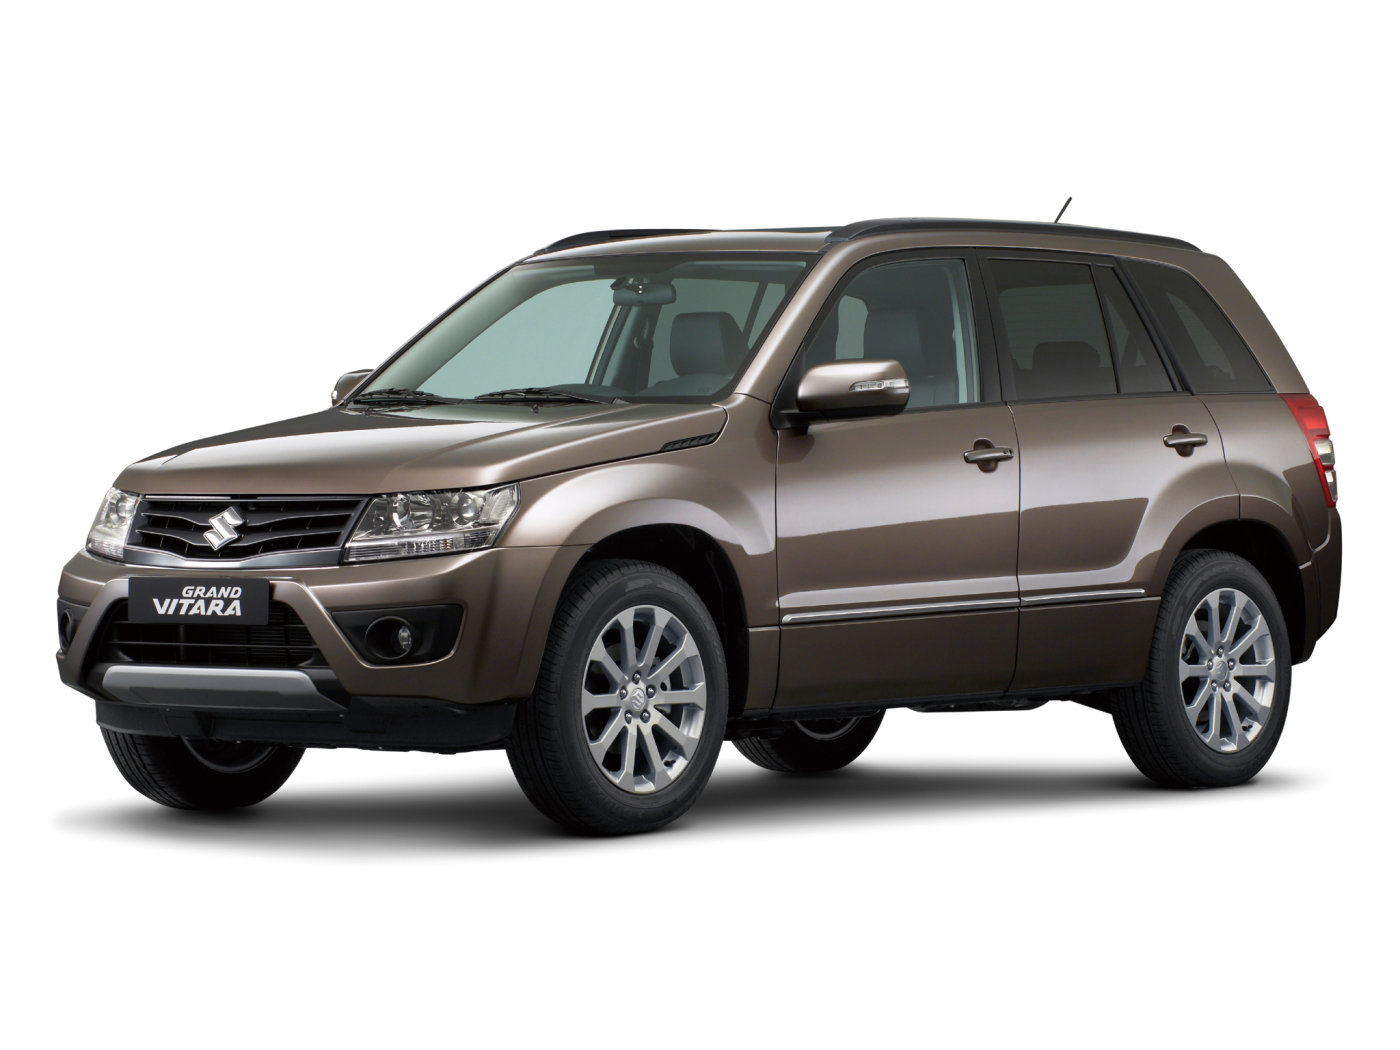 Suzuki Grand Vitara or similar